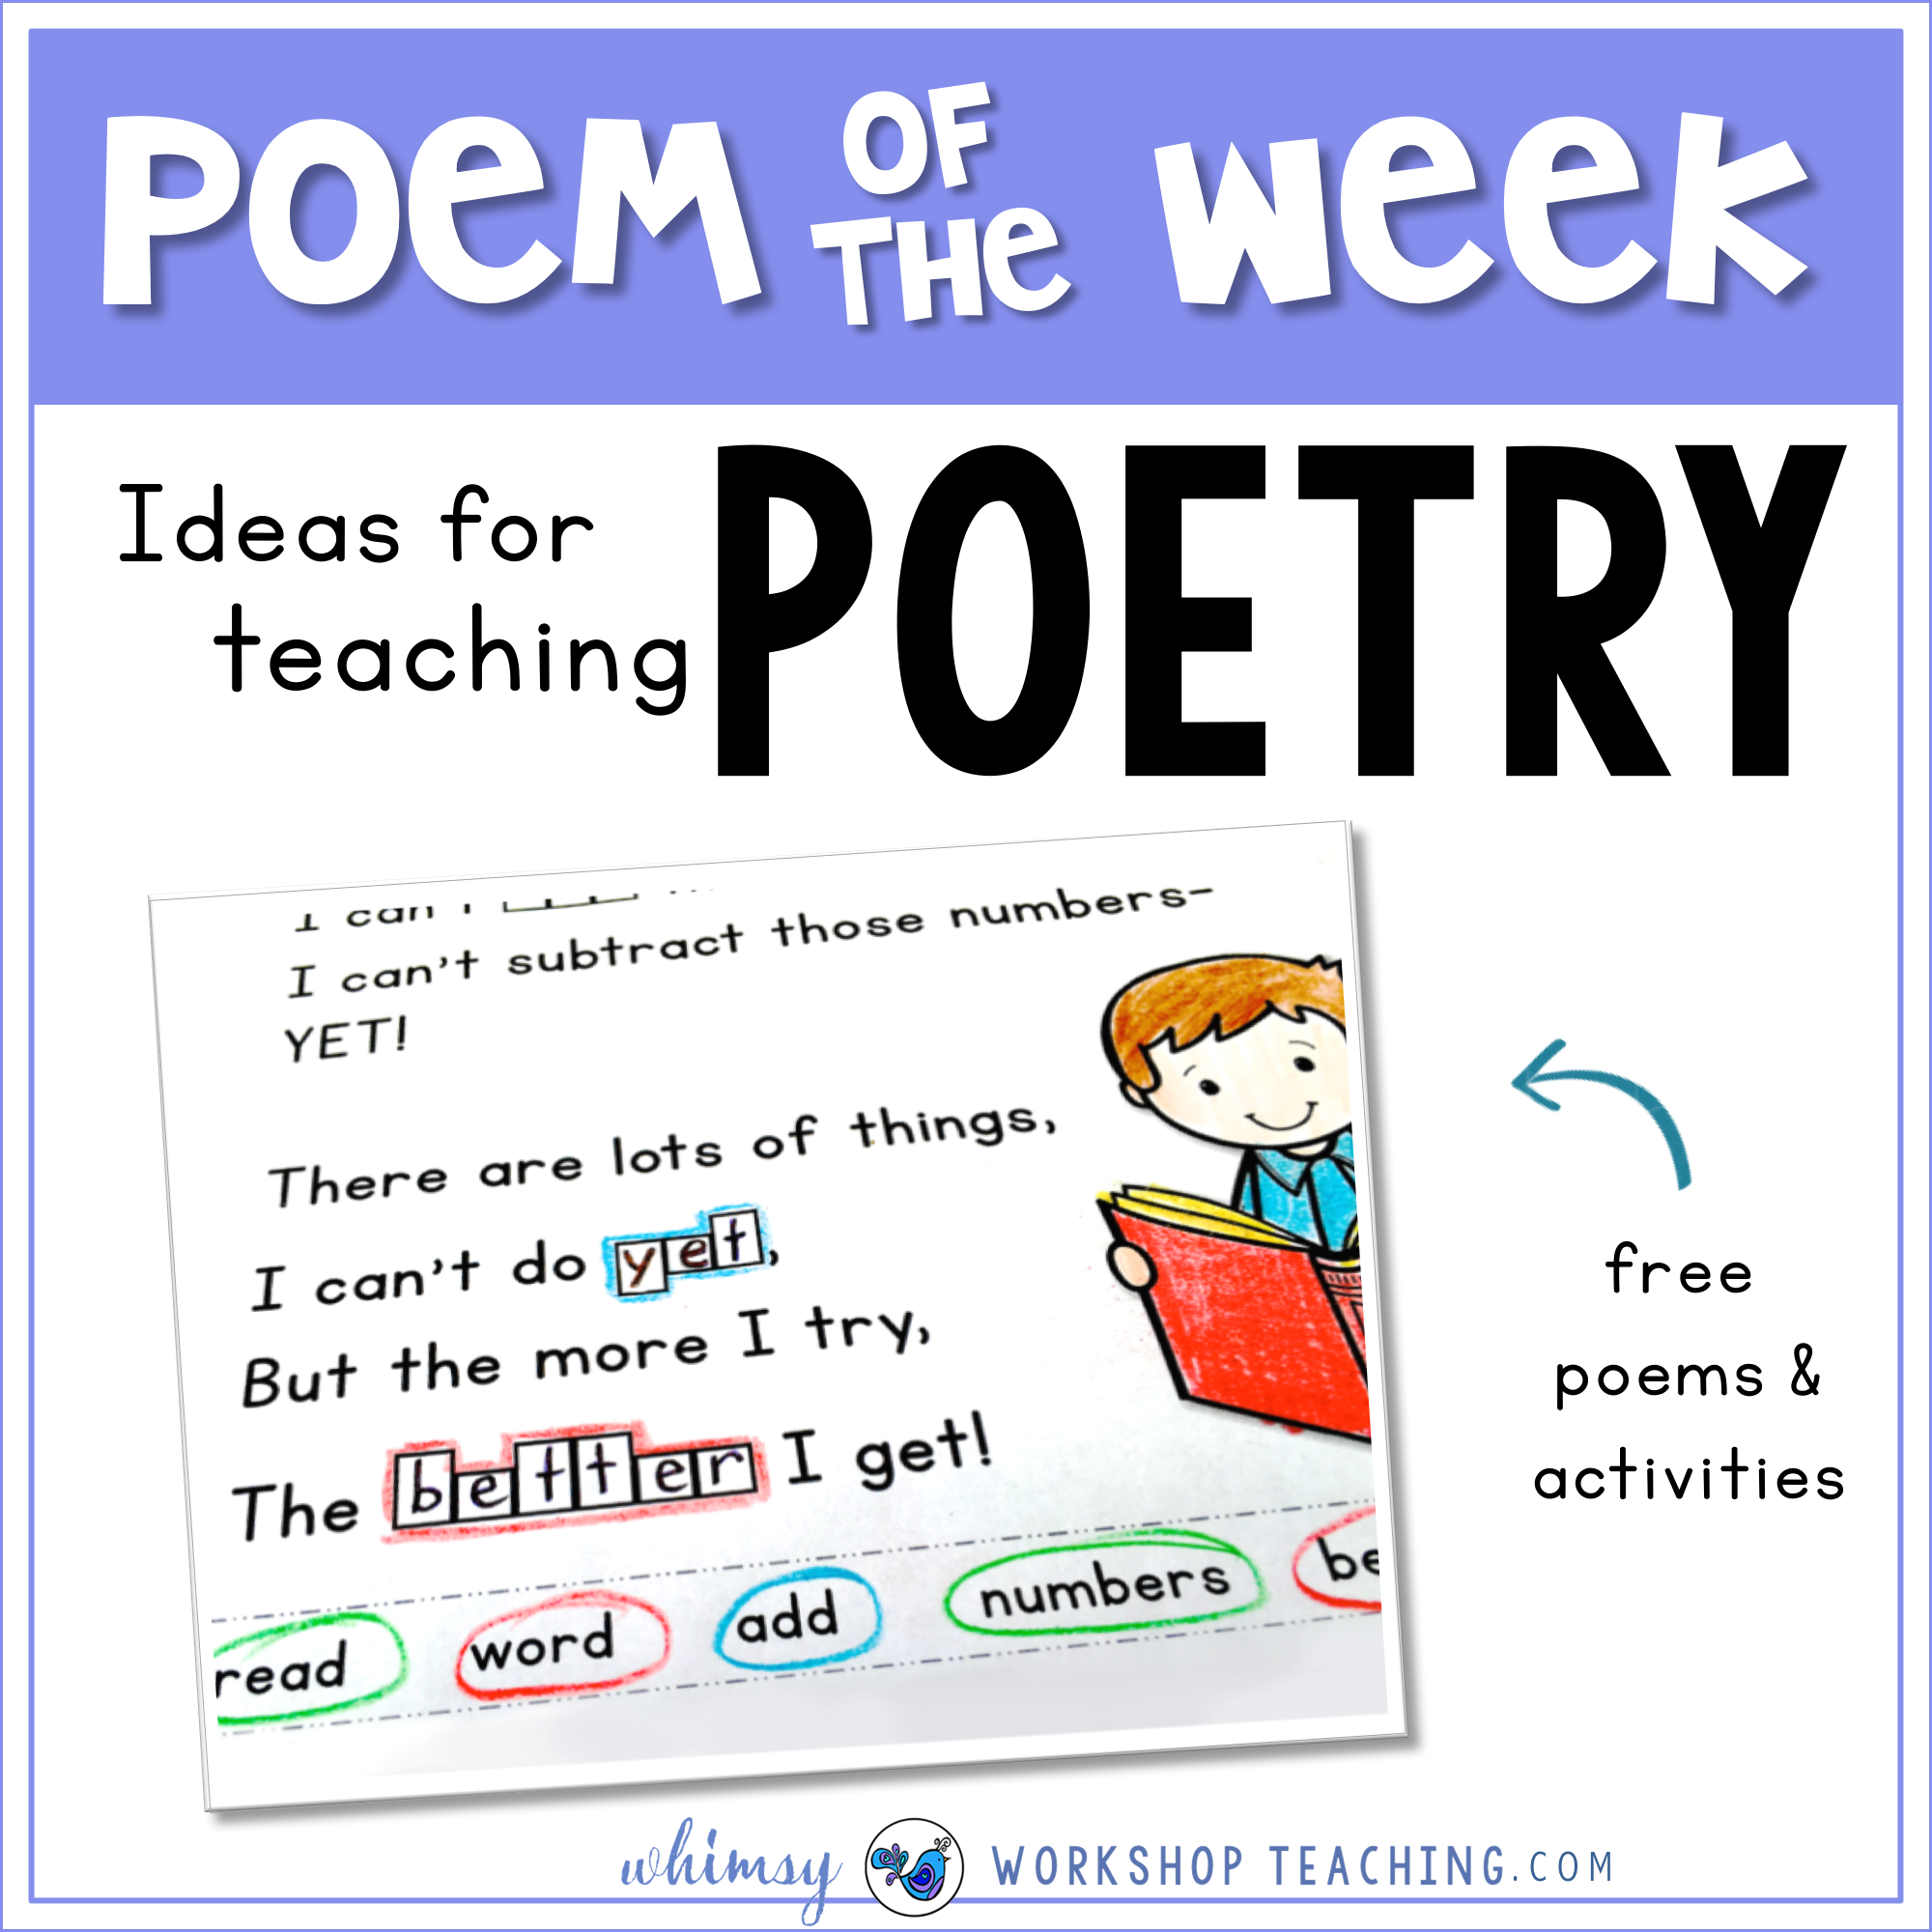 Poem of the Week and poetry ideas in the primary classroom